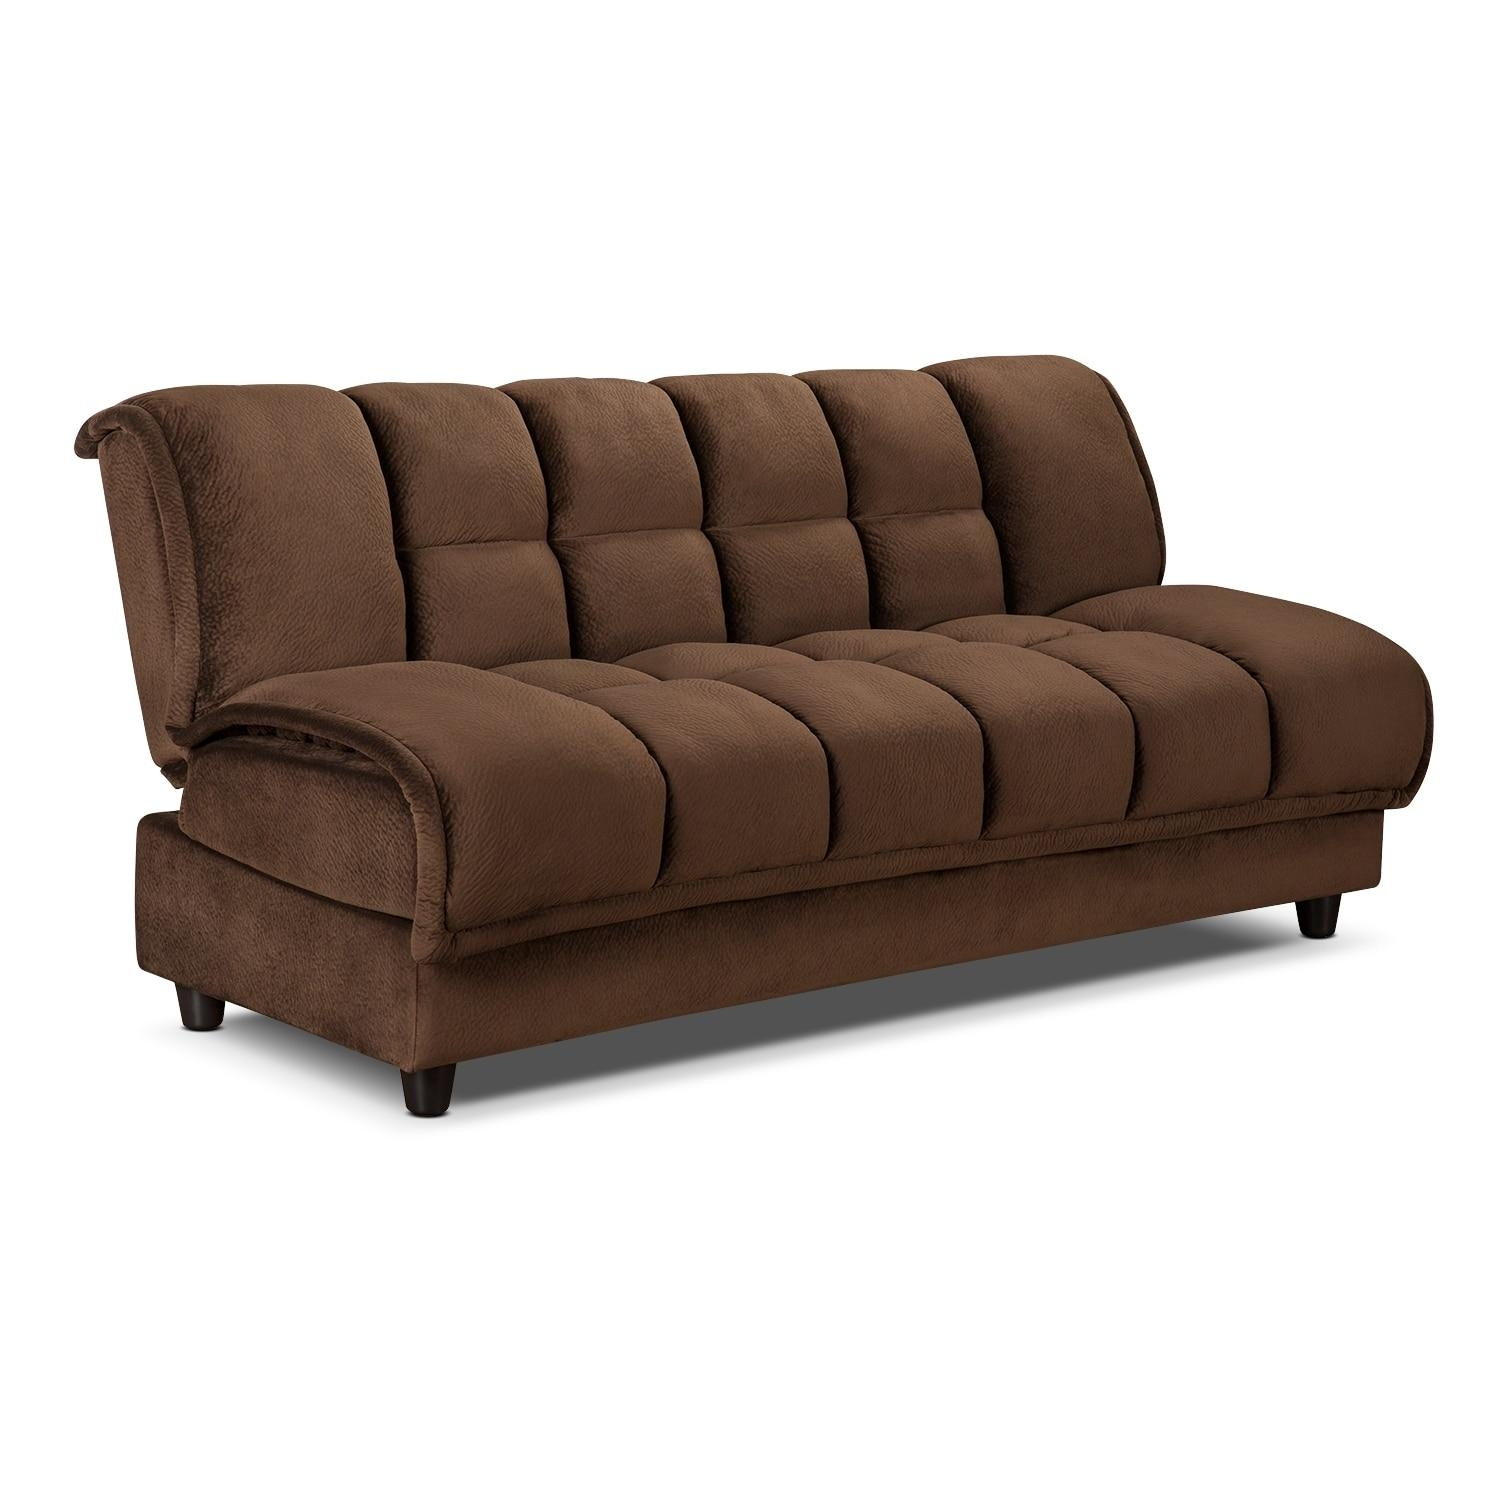 Small Sectional Sofa Value City